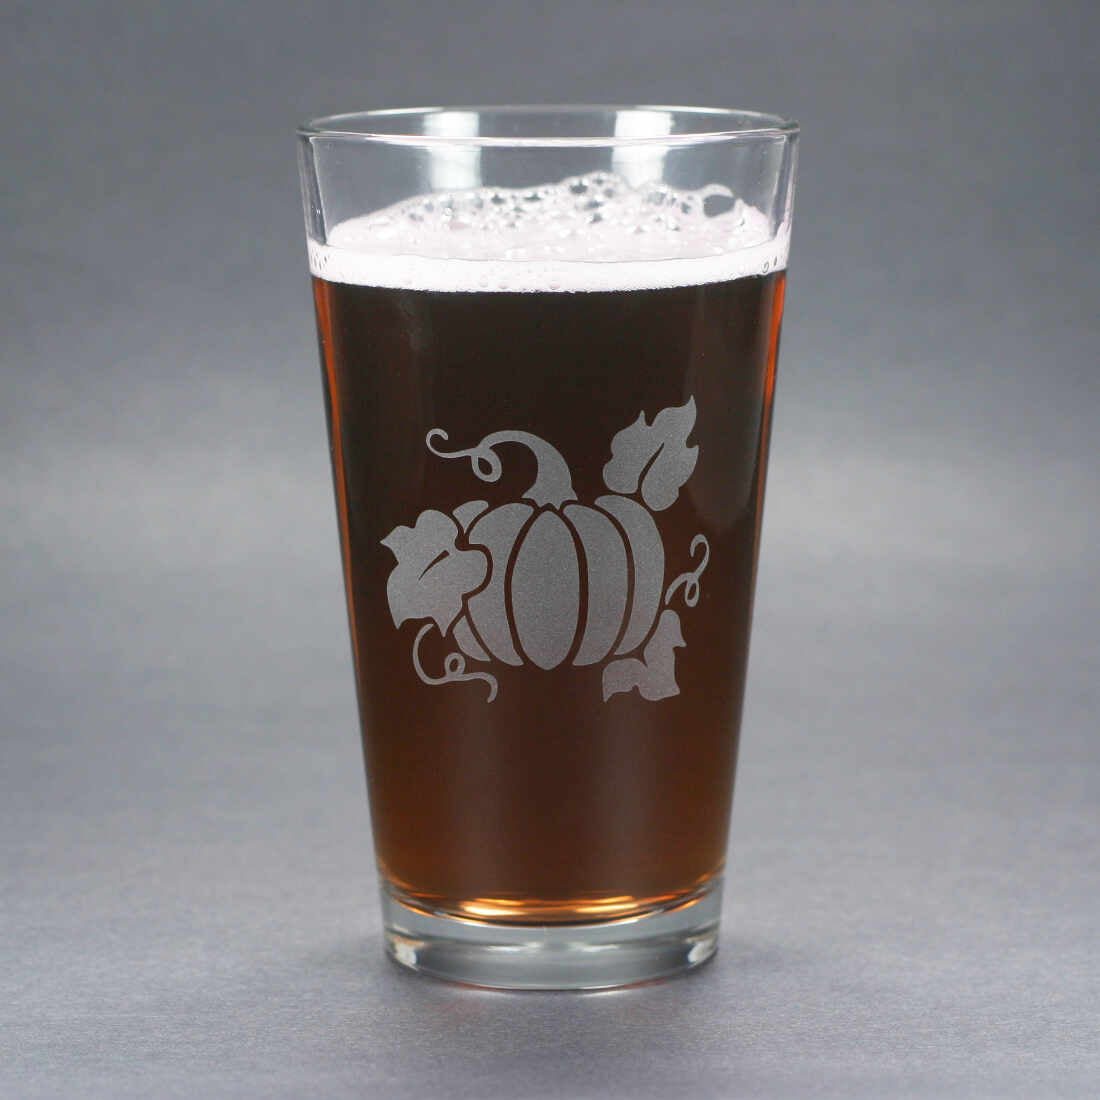 pumpkin spice beer pint glass by Bread and Badger